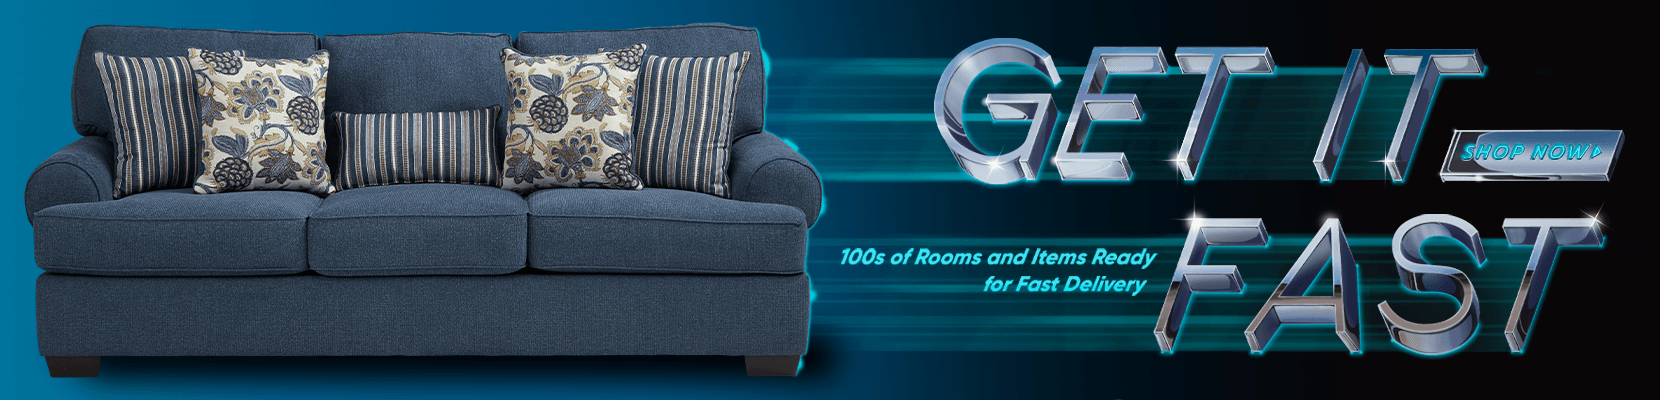 get it fast. 100s of rooms and items ready for fast delivery. shop now